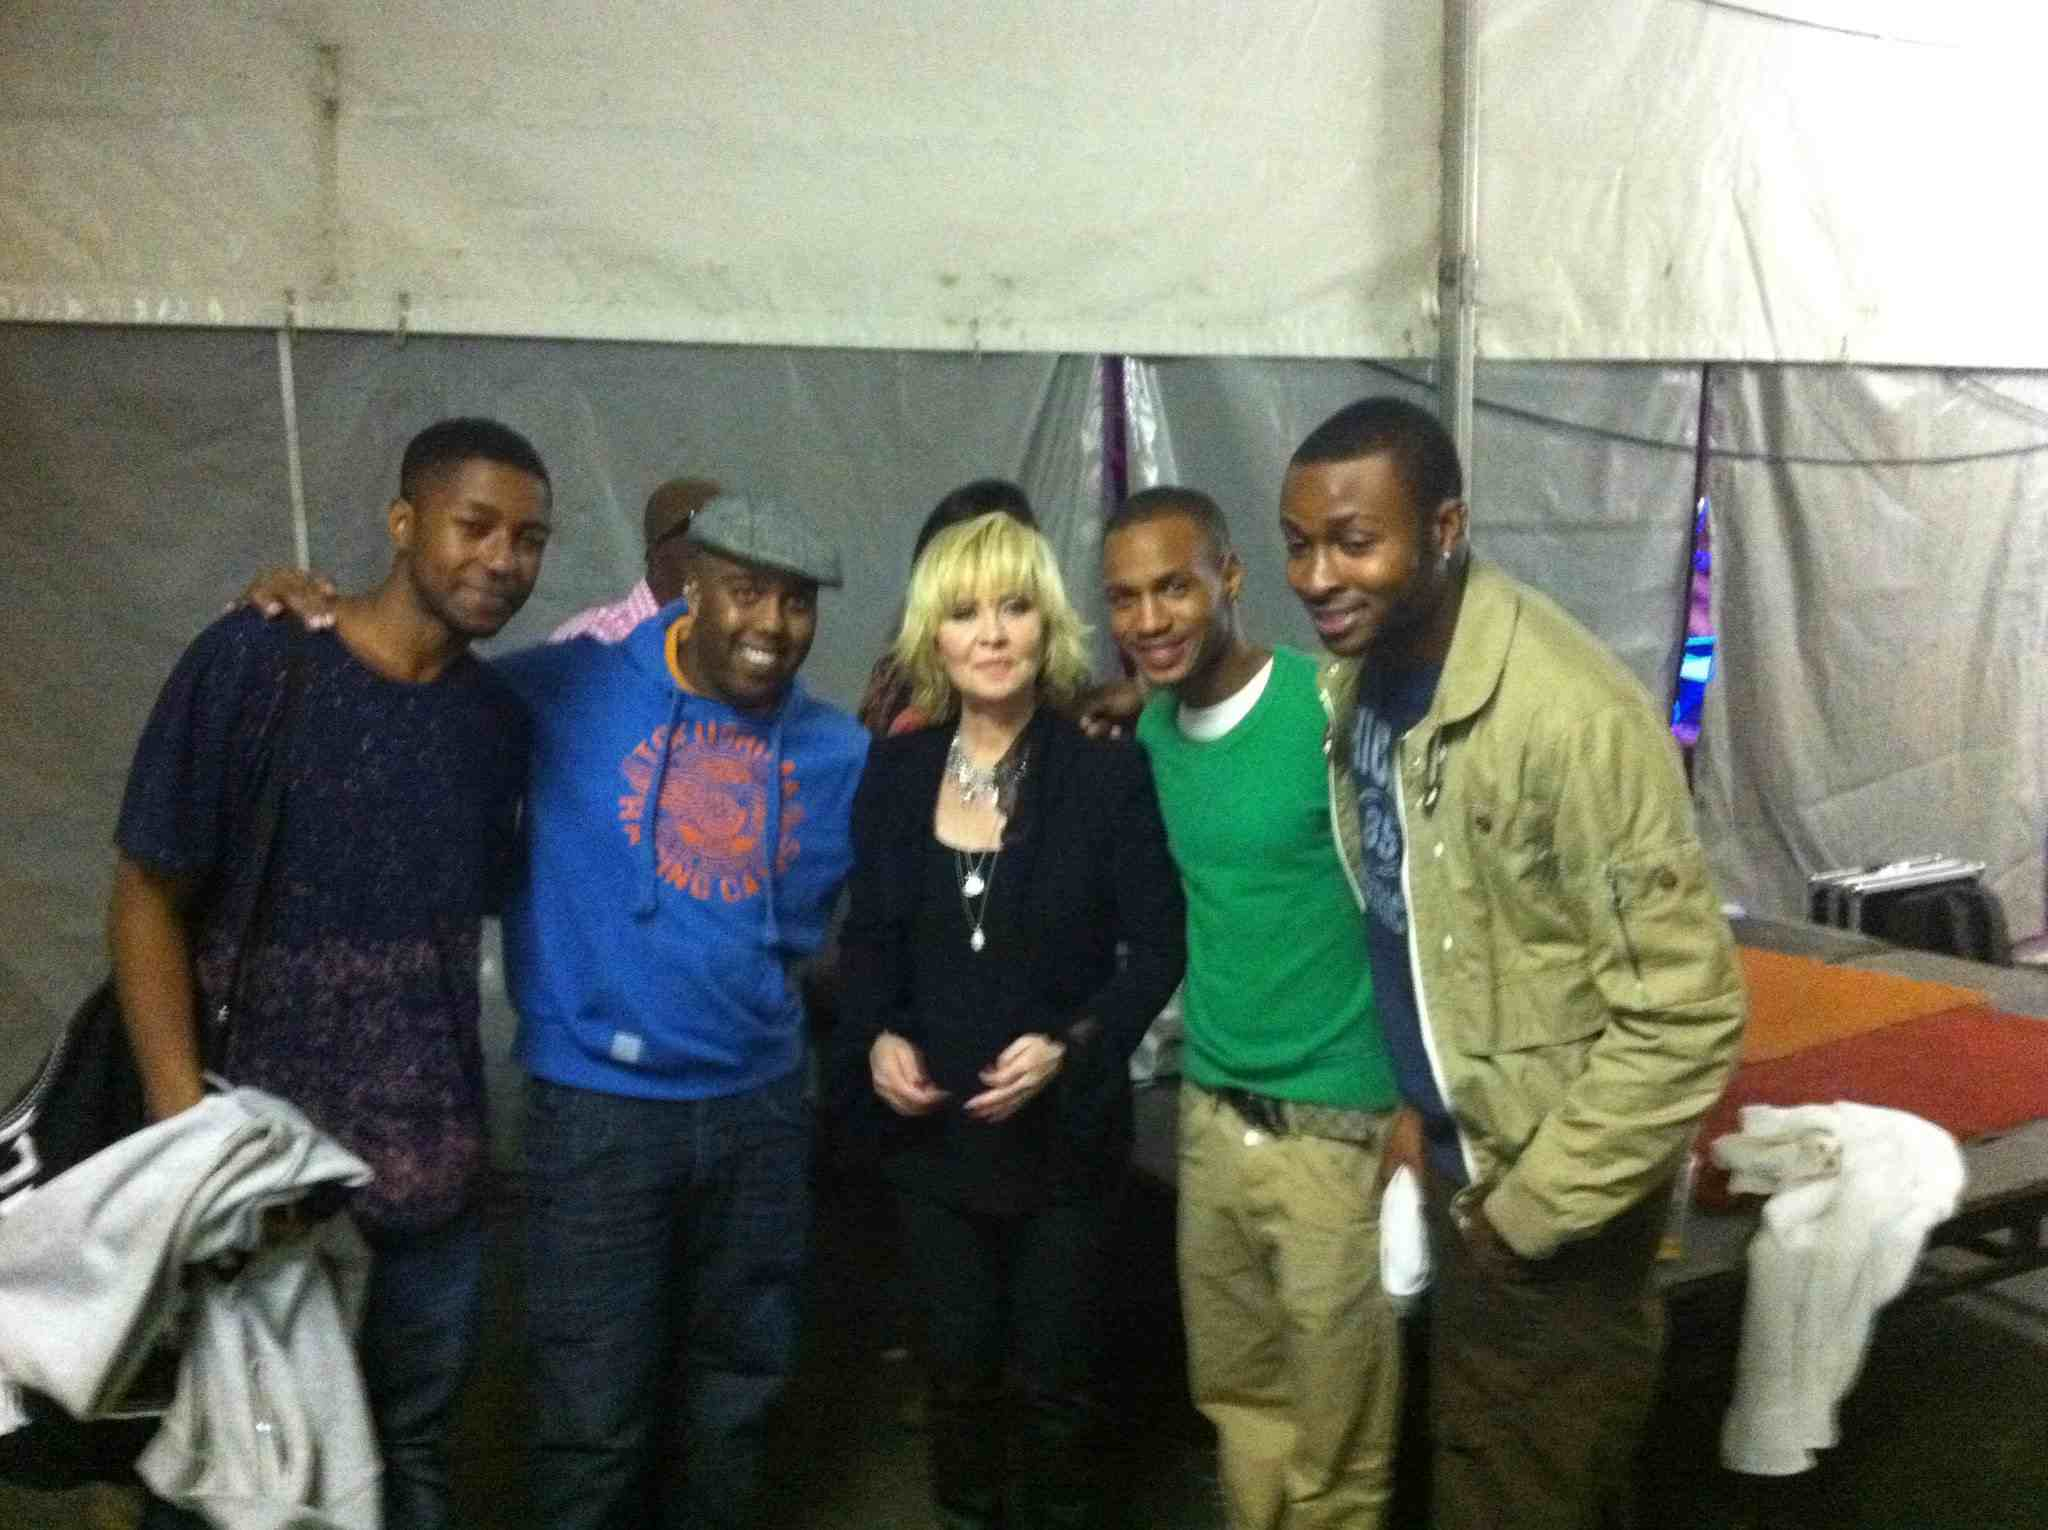 Us with the Lovely Lulu